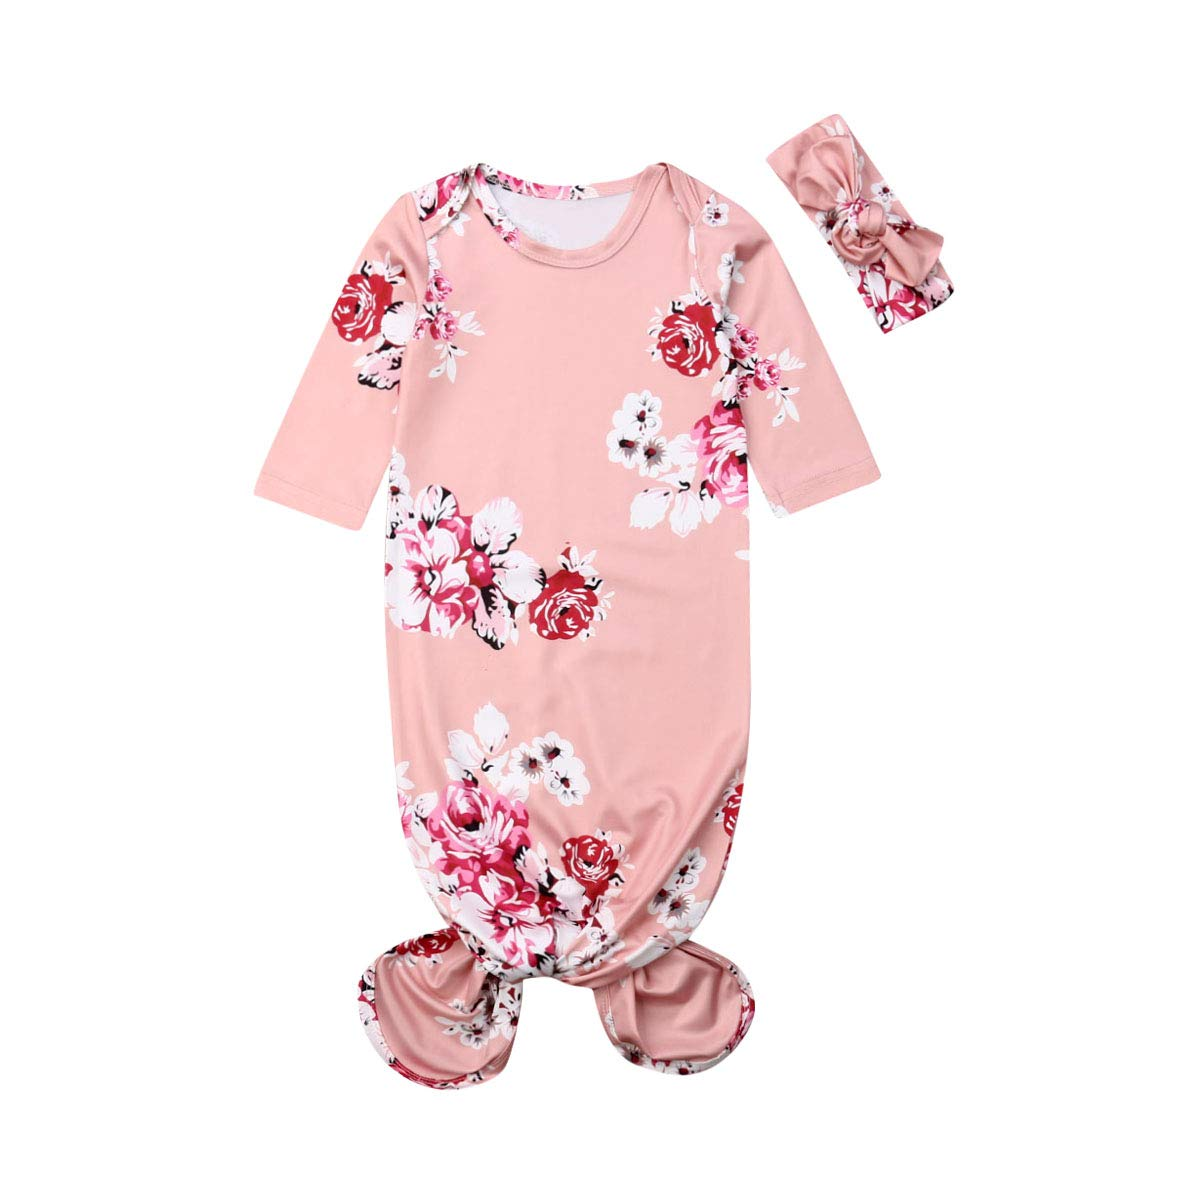 Mubineo Infant Newborn Baby Floral Sleeping Bag Swaddle Blanket with Headband Outfits (Peach Pink, 0-6 Months)